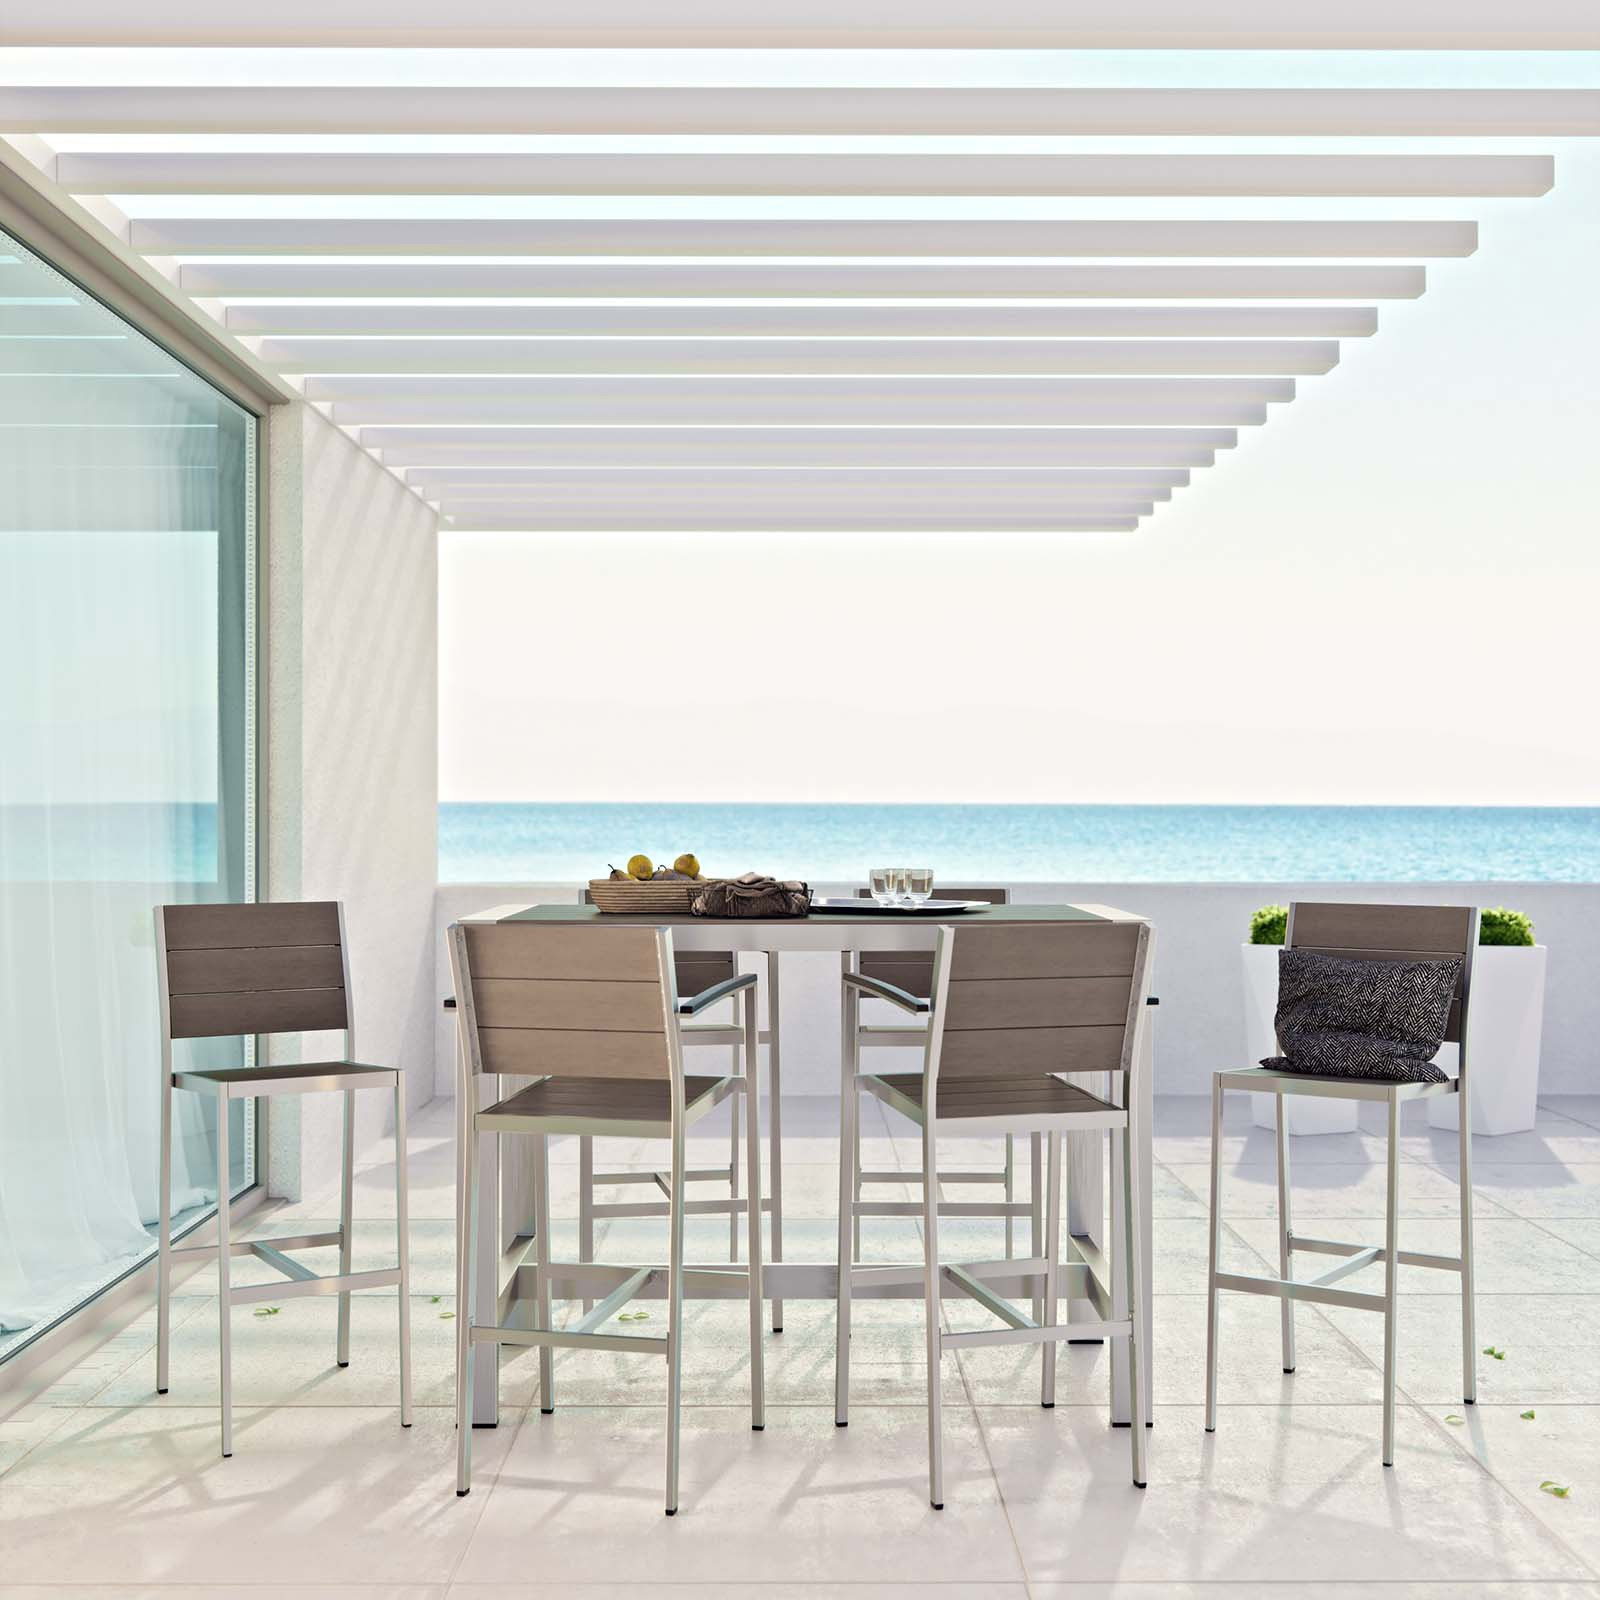 Modway Shore 7-Piece Outdoor Patio Aluminum Dining Set, Silver Grey